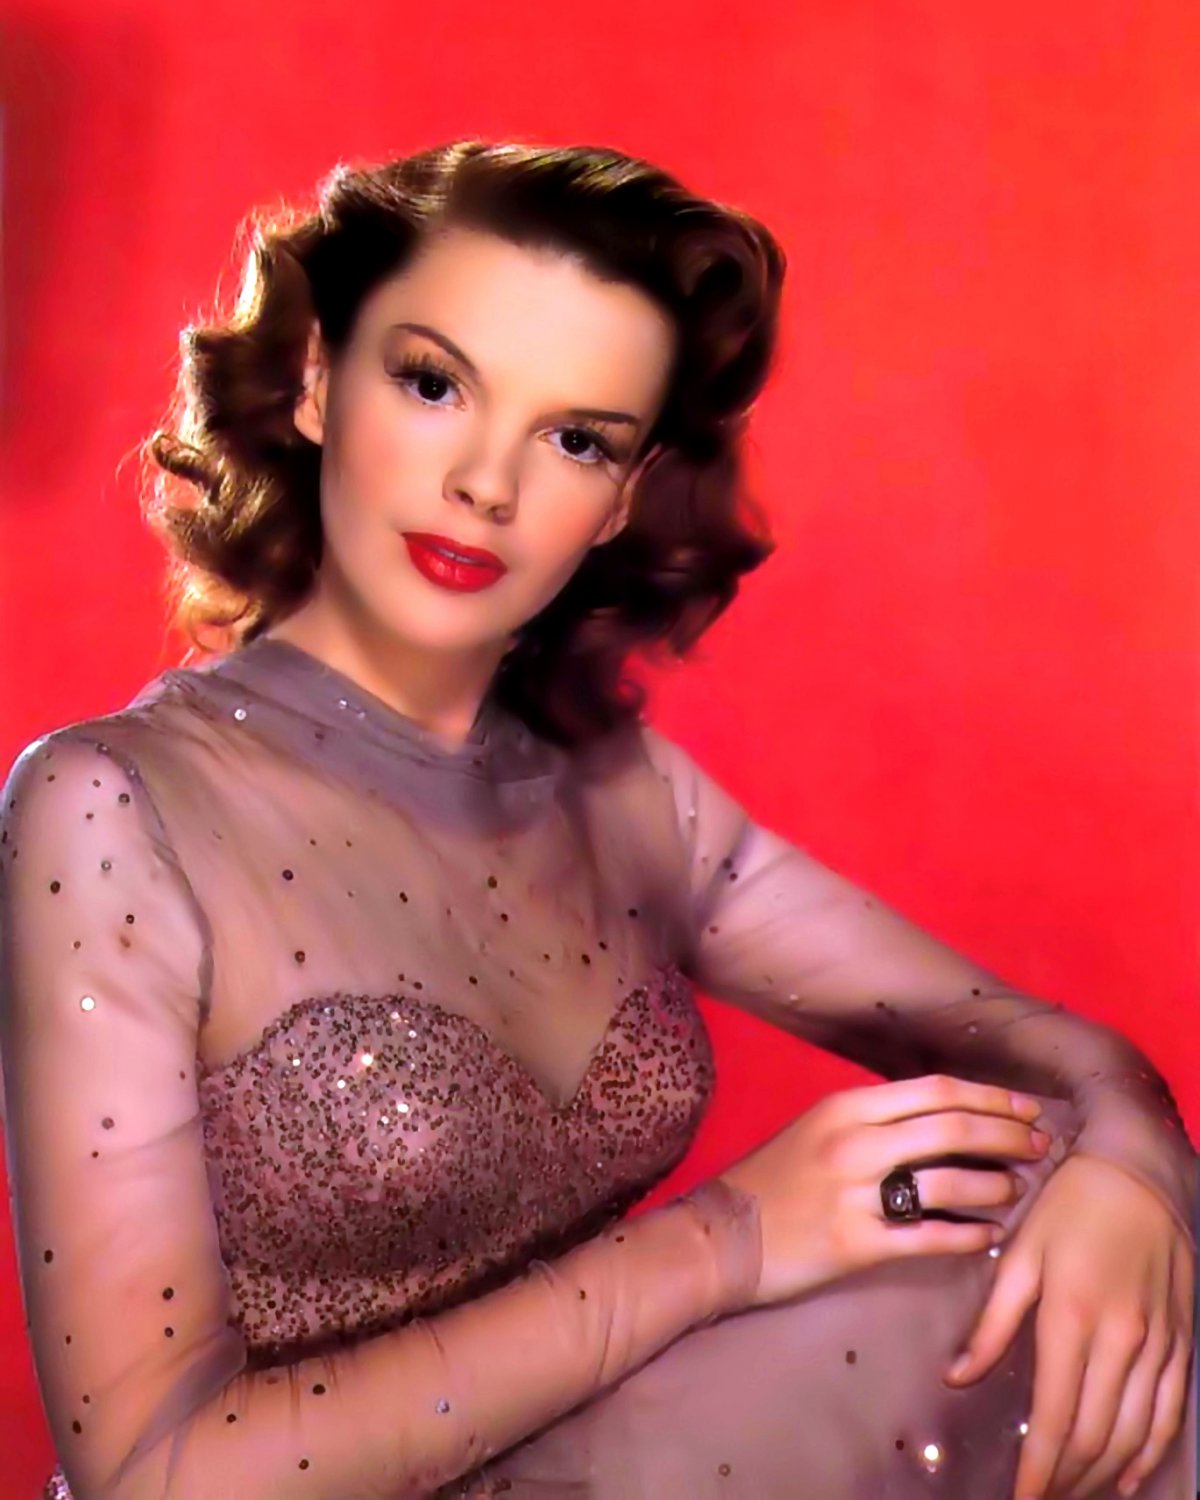 """JUDY GARLAND IN THE FILM """"PRESENTING LILY MARS"""" - 8X10 PUBLICITY PHOTO (ZY-470)"""